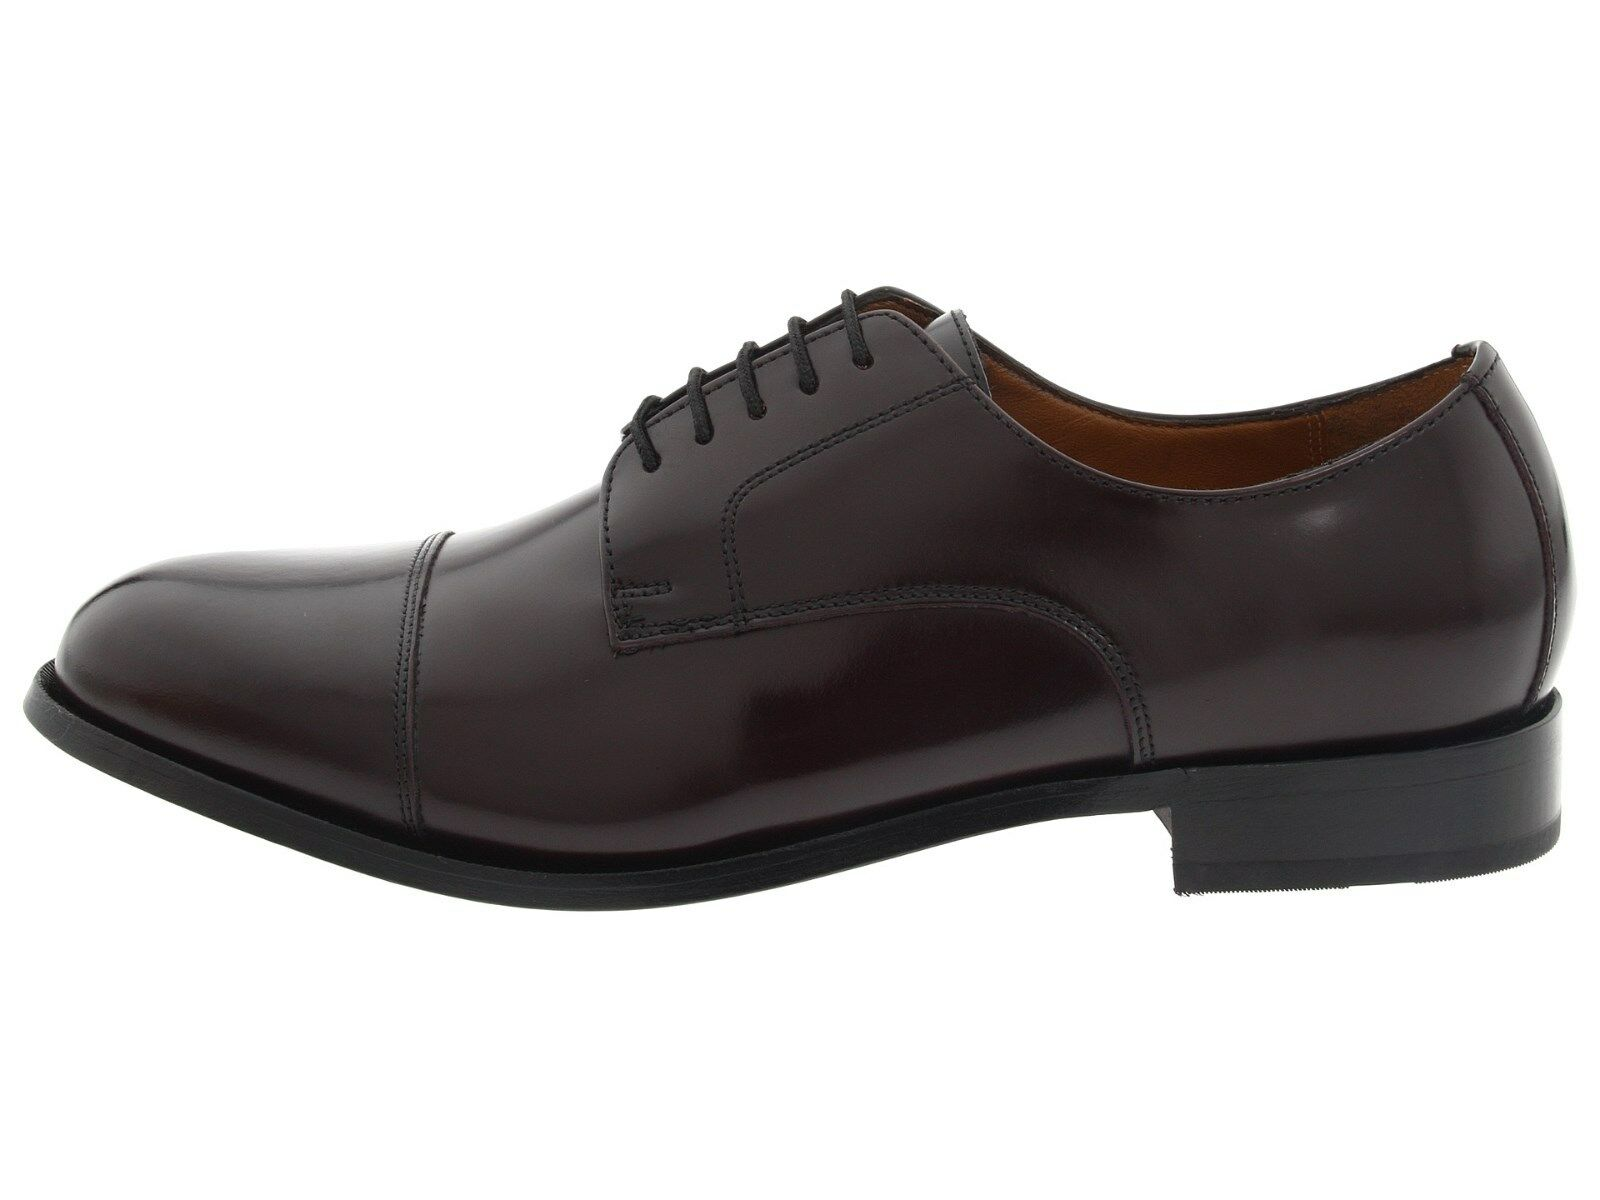 Florsheim Men's BURGUNDY Broxton Cap Toe Oxford, BURGUNDY Men's f367ae